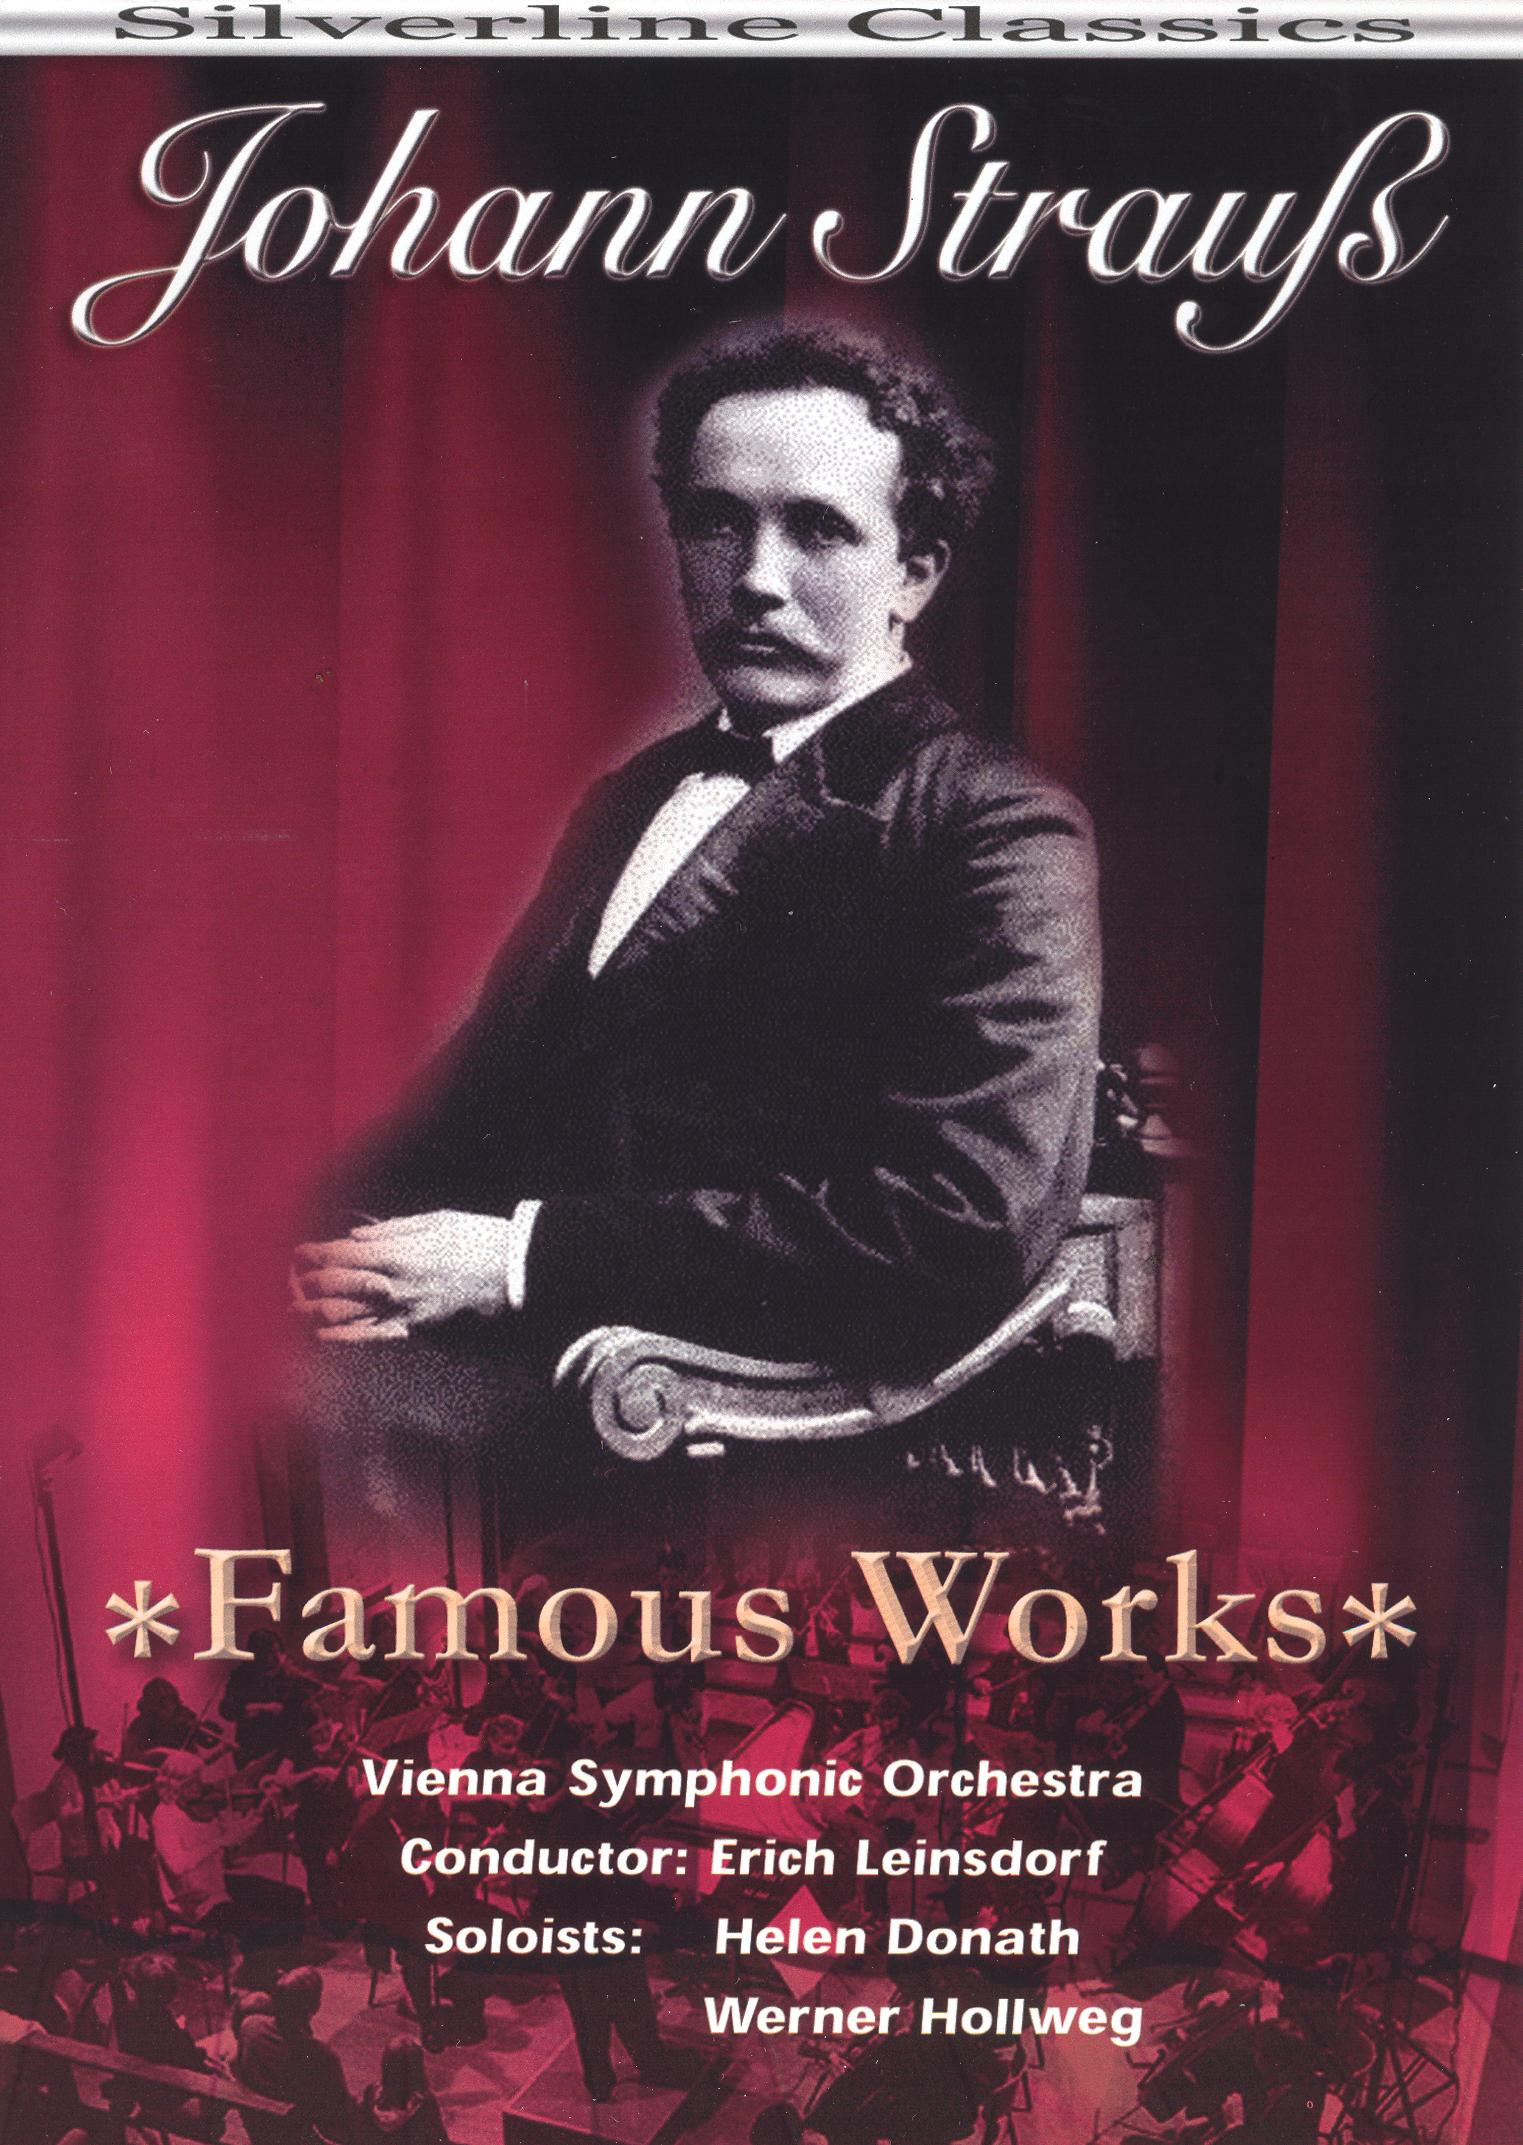 Vienna Symphonic Orchestra: Johann Strauss - Famous Works